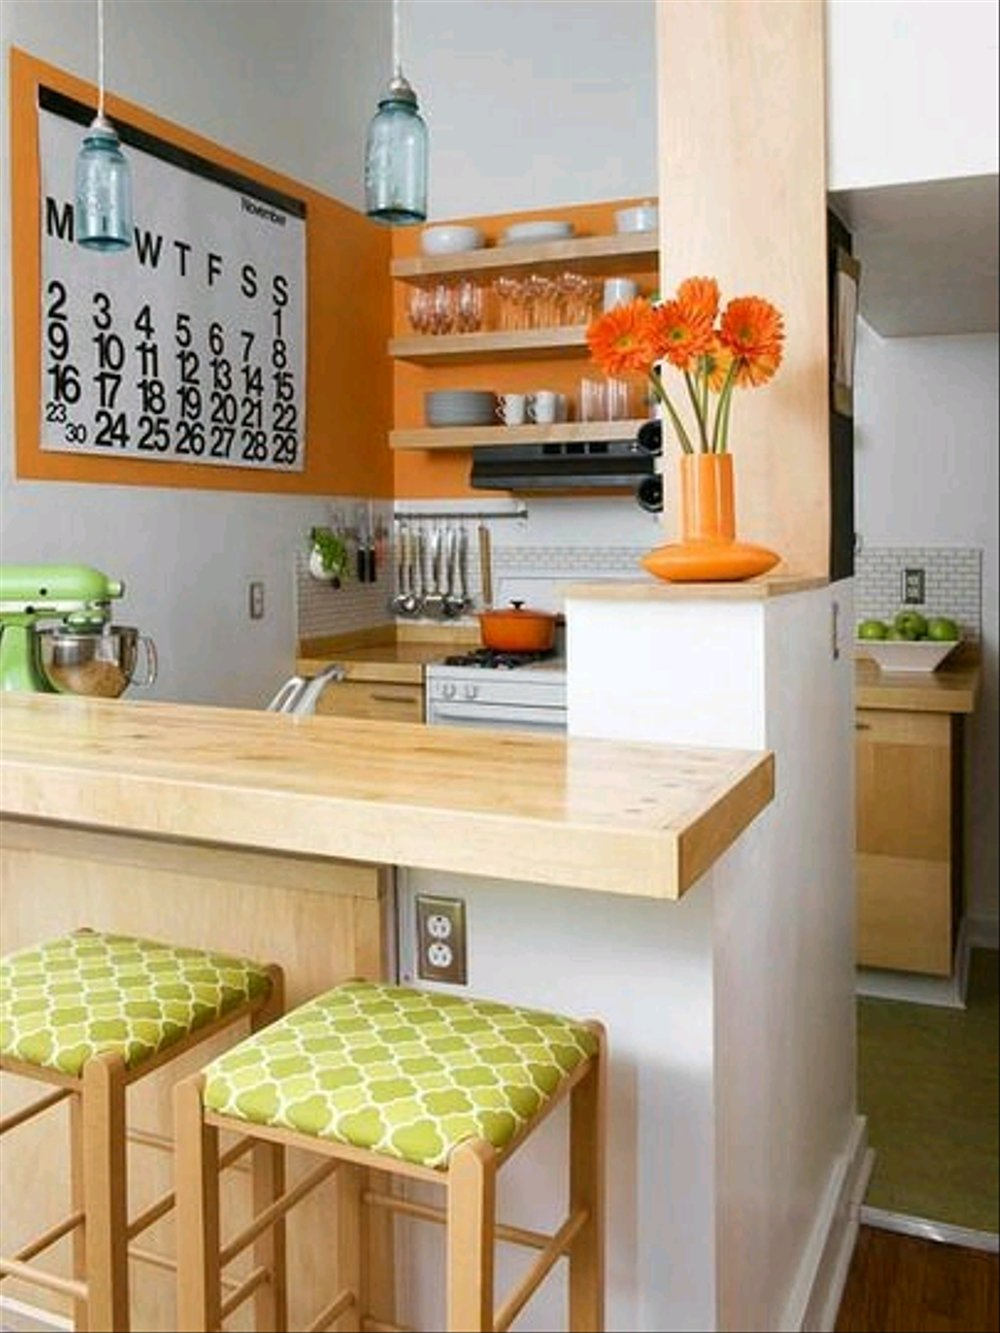 Kitchen Set Minimalis Mini Bar